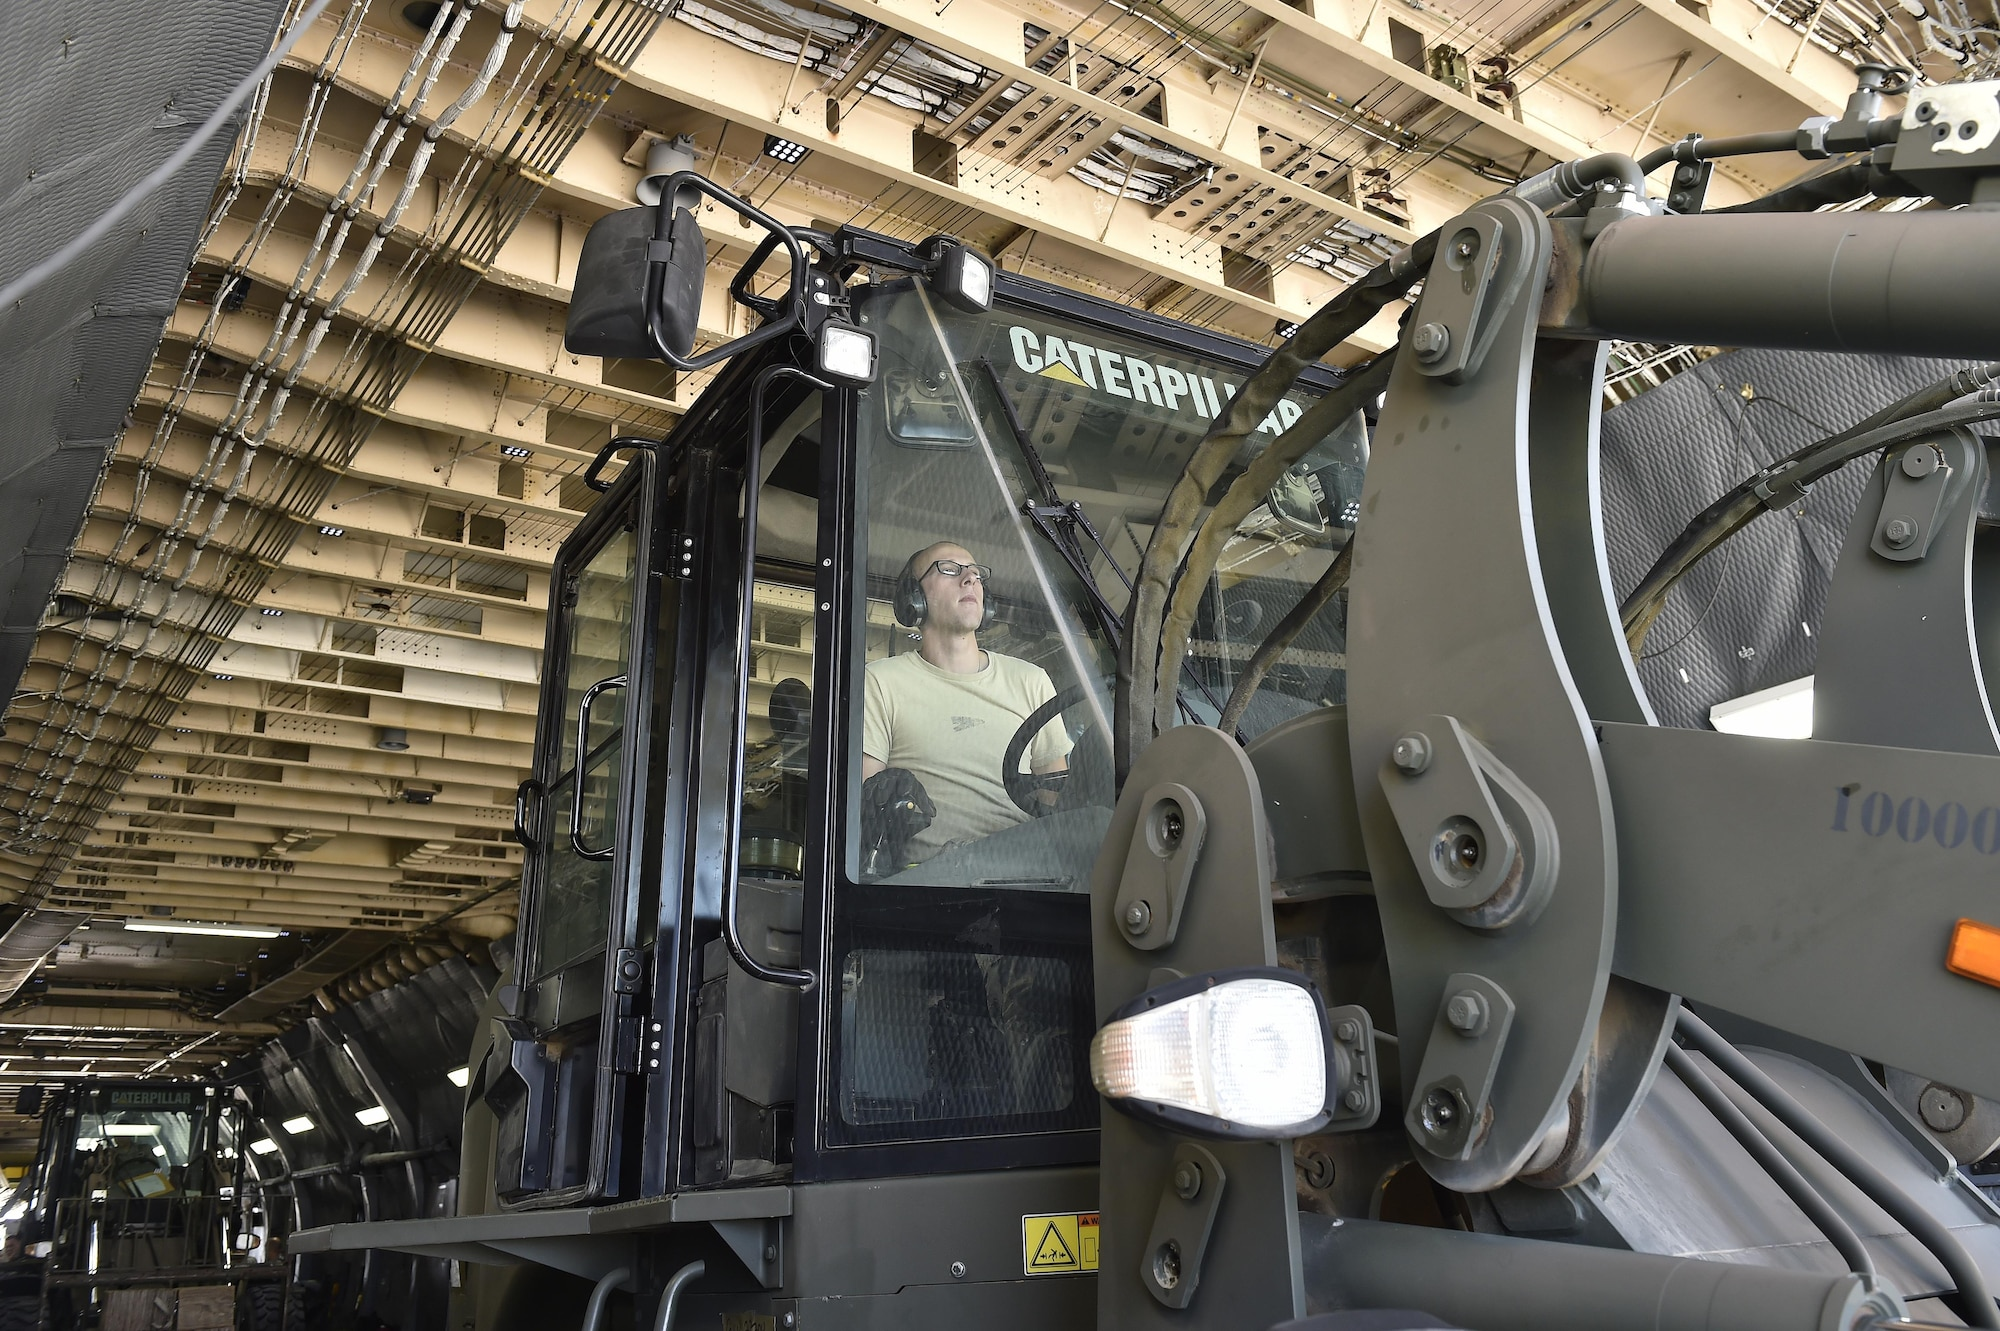 Senior Airman Justin Polk, 821st Contingency Response Support Squadron aerial porter, offloads the 10K All Terrain forklift, September 9, 2017, at Scott Air Force Base, Ill.  Two contingency response teams from the 821st Contingency Response Group at Travis Airforce Base, Calif., and a third from the 621st Contingency Response Group at Joint Base McGuire-Dix-Lakehurst, N.J. prepositioned at Scott AFB, to await forward deployment to support ongoing relief efforts in the wake of Hurricane Irma.  (U.S. Air Force photo by Tech. Sgt. Liliana Moreno/Released)